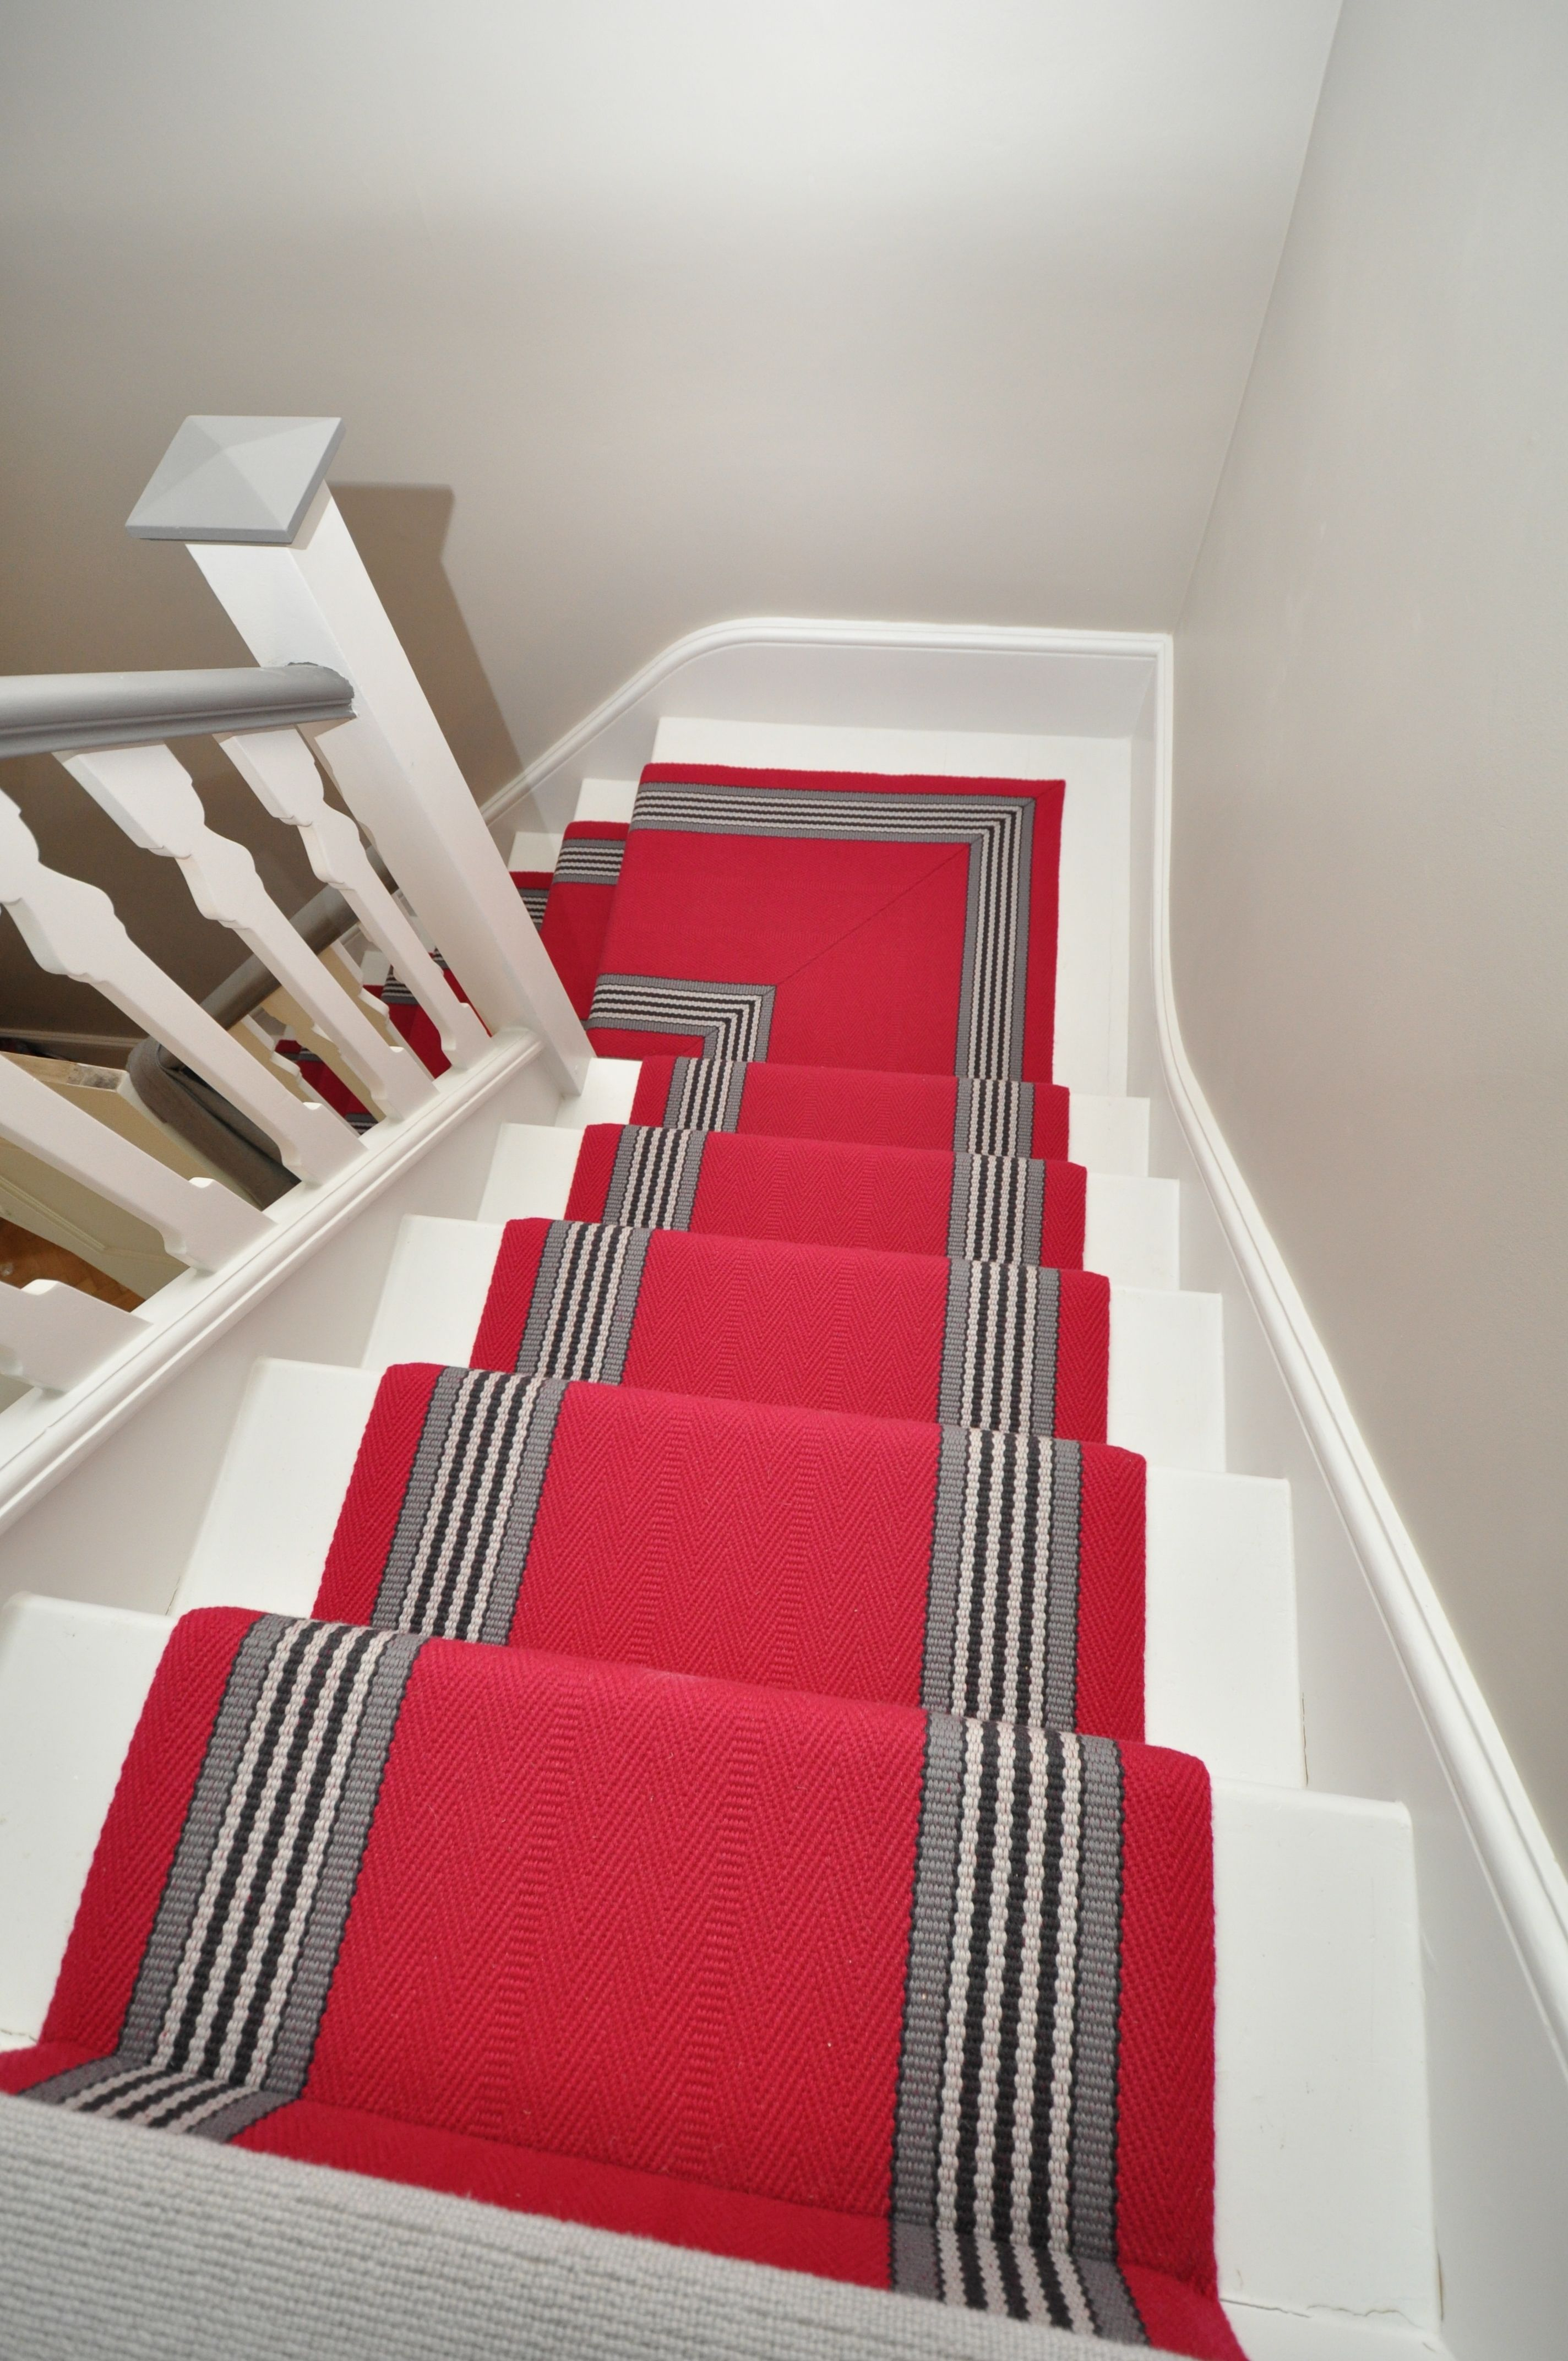 4 098 Flatweave Stair Runners Off The Loom Berwick 5 Flatweave Stair Runners Fitted In London Www Offtheloom Co Uk Mitred On Quarter Landing We Turned Down Stair Runner Stairs